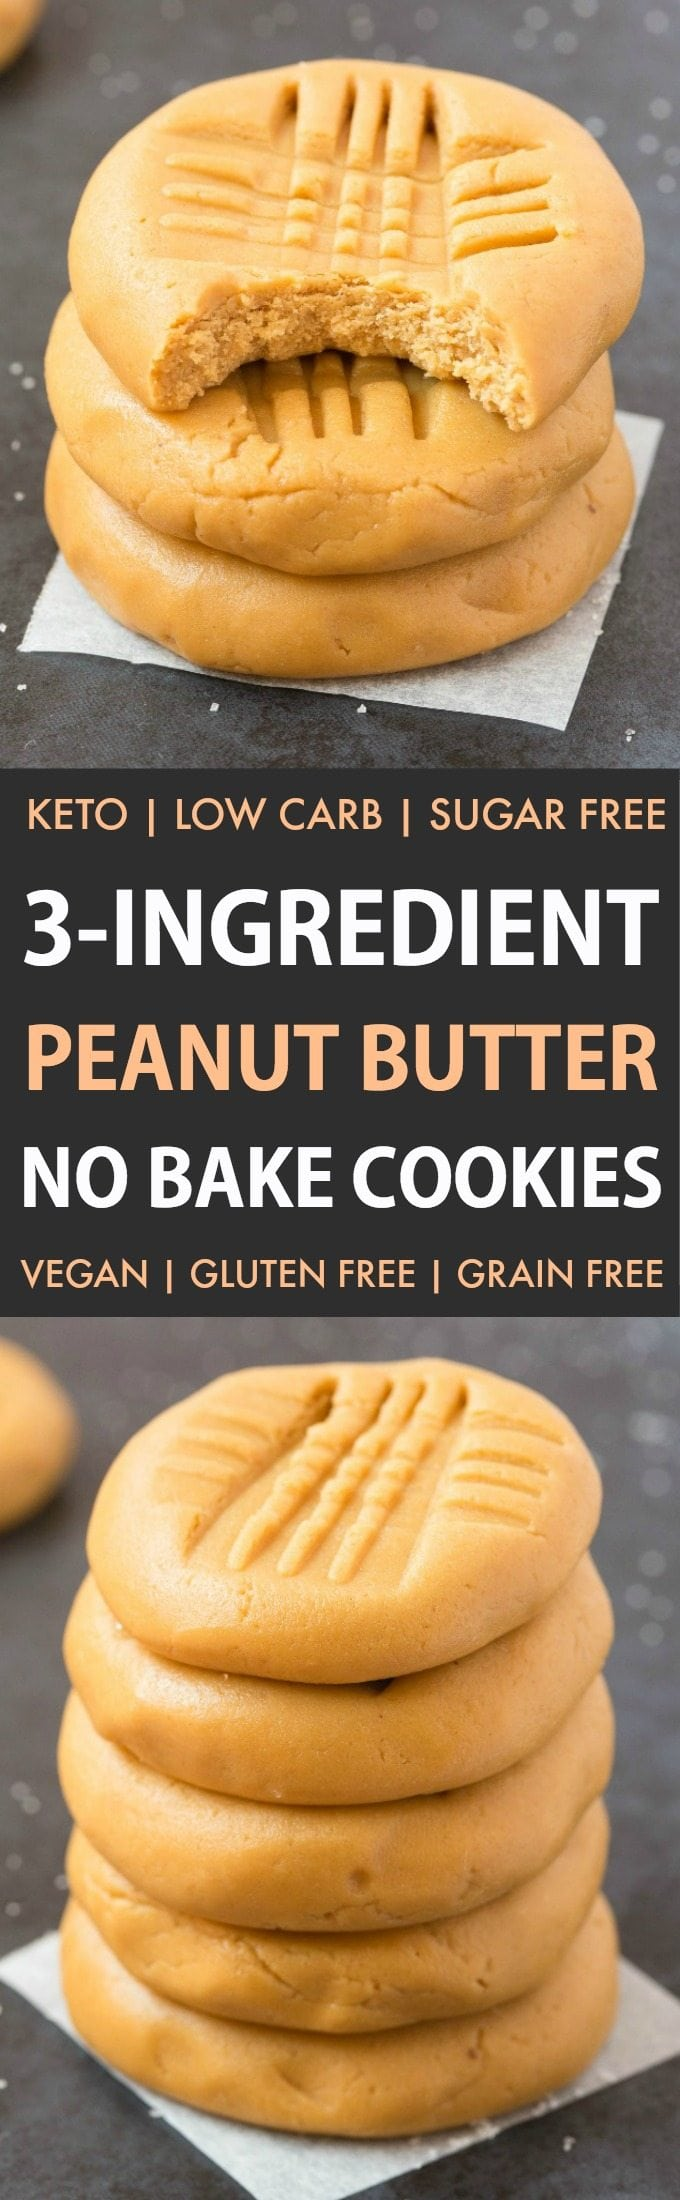 No Sugar Peanut Butter Cookies